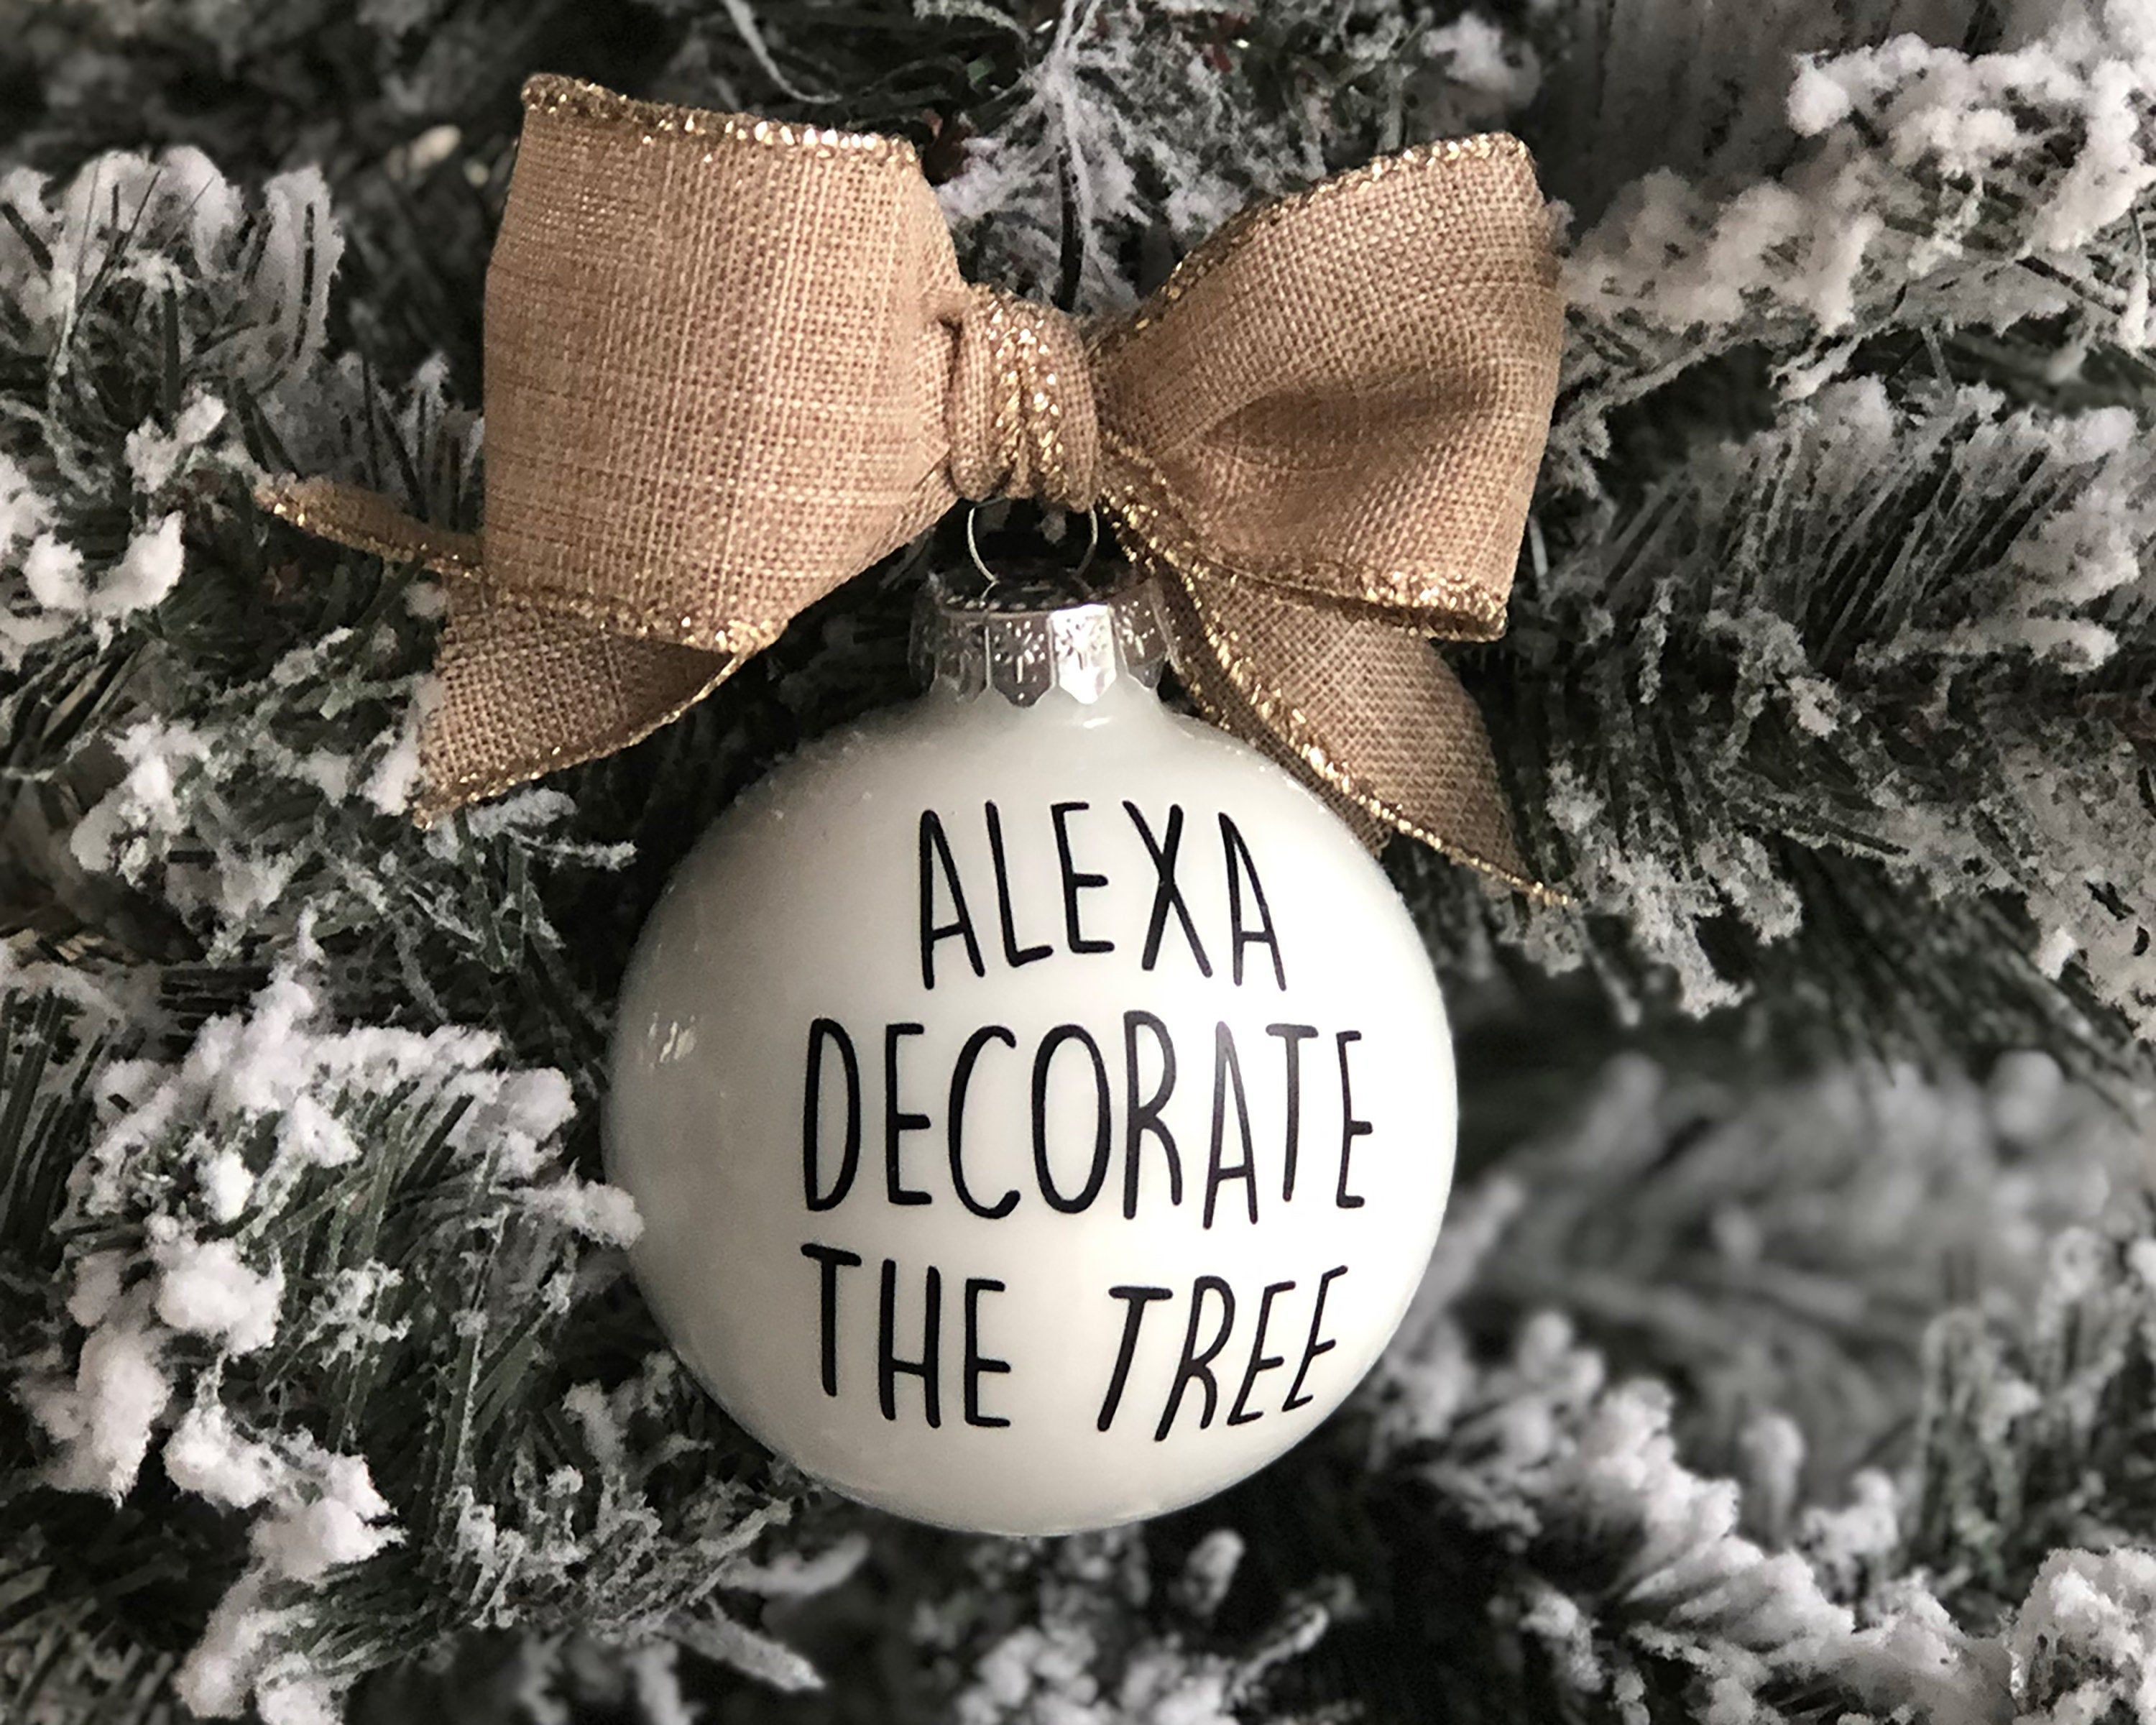 Pin By Daisy Tompkins On York Impressions In 2020 Funny Christmas Ornaments Christmas Ornaments Homemade Christmas Ornaments